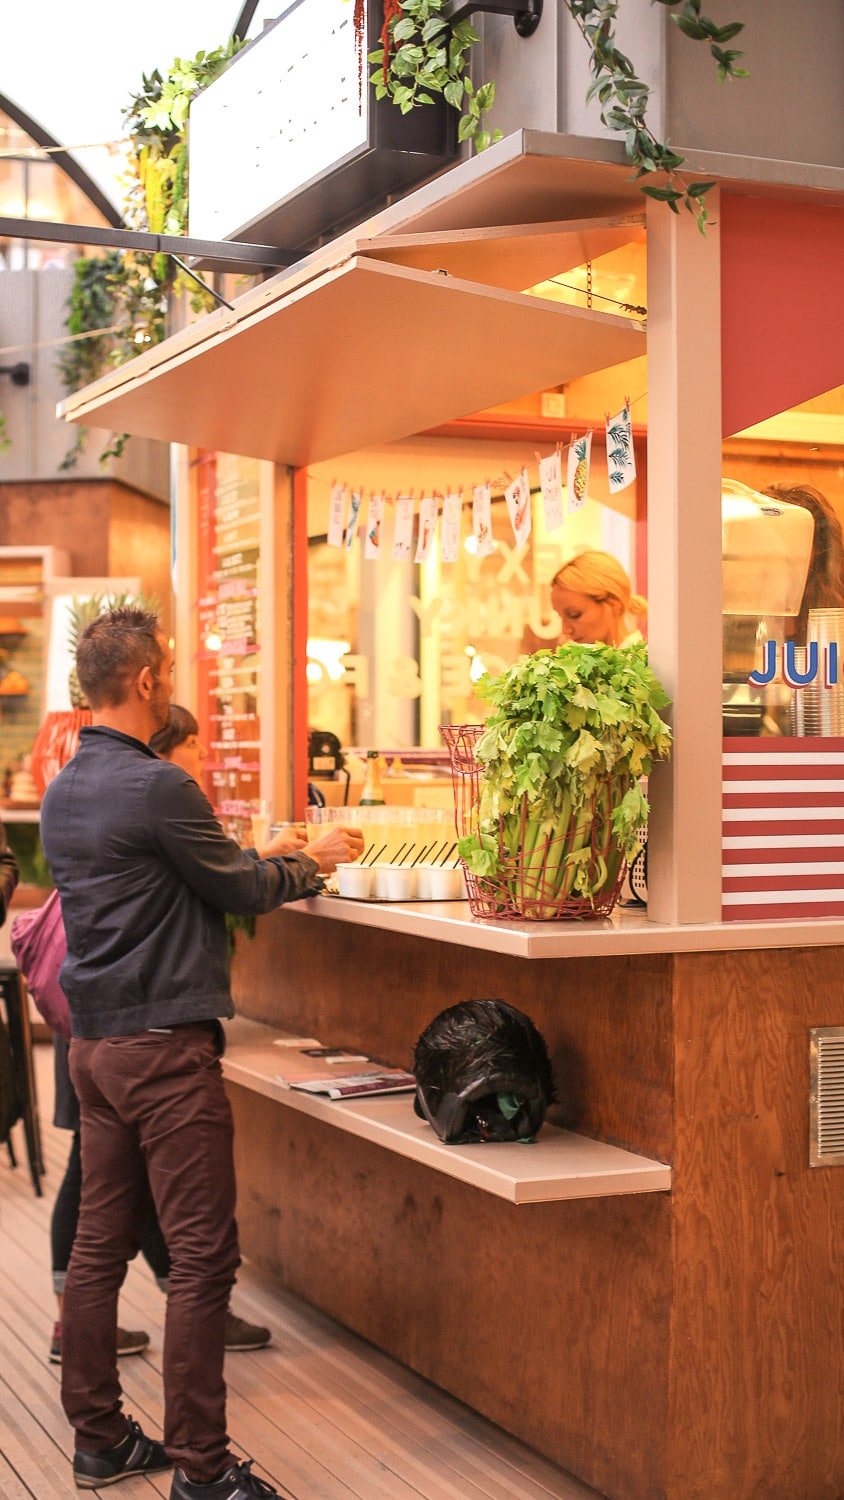 food-court-de-paris-we-are-juice J'ai découvert le premier food court de Paris : Parisian Omnivore District